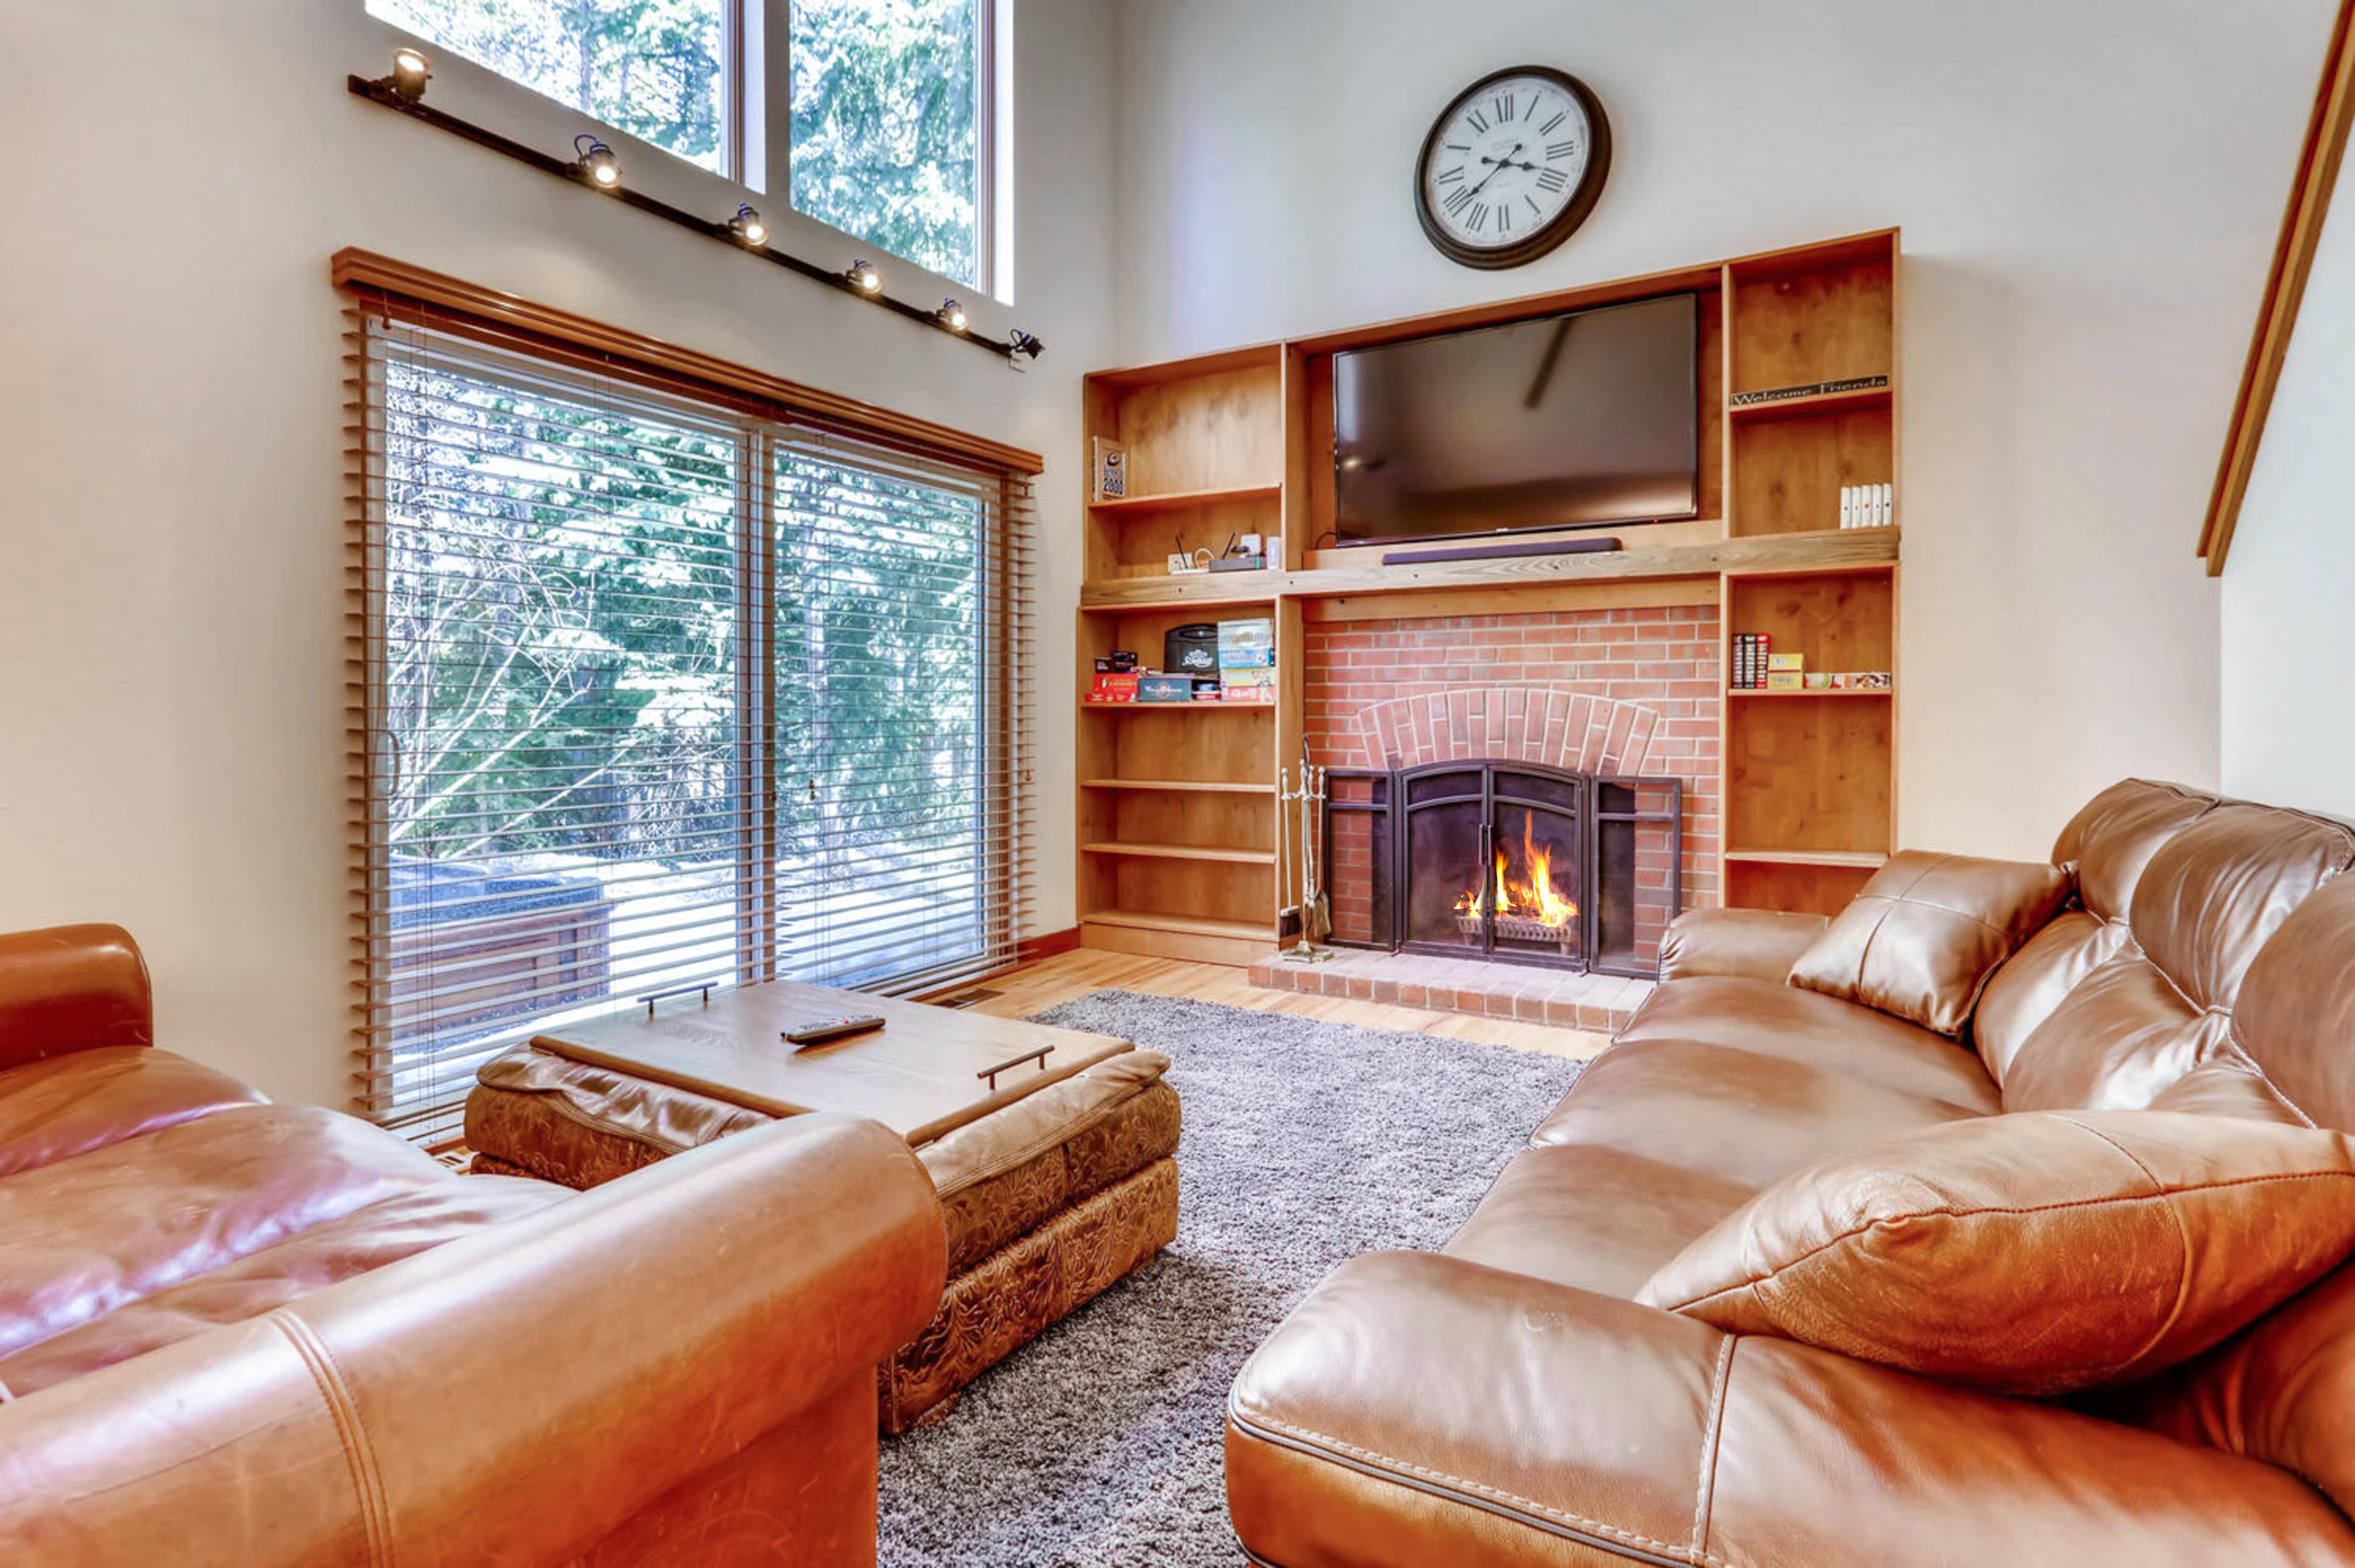 Breckenridge CO Vacation Rental This spacious townhome